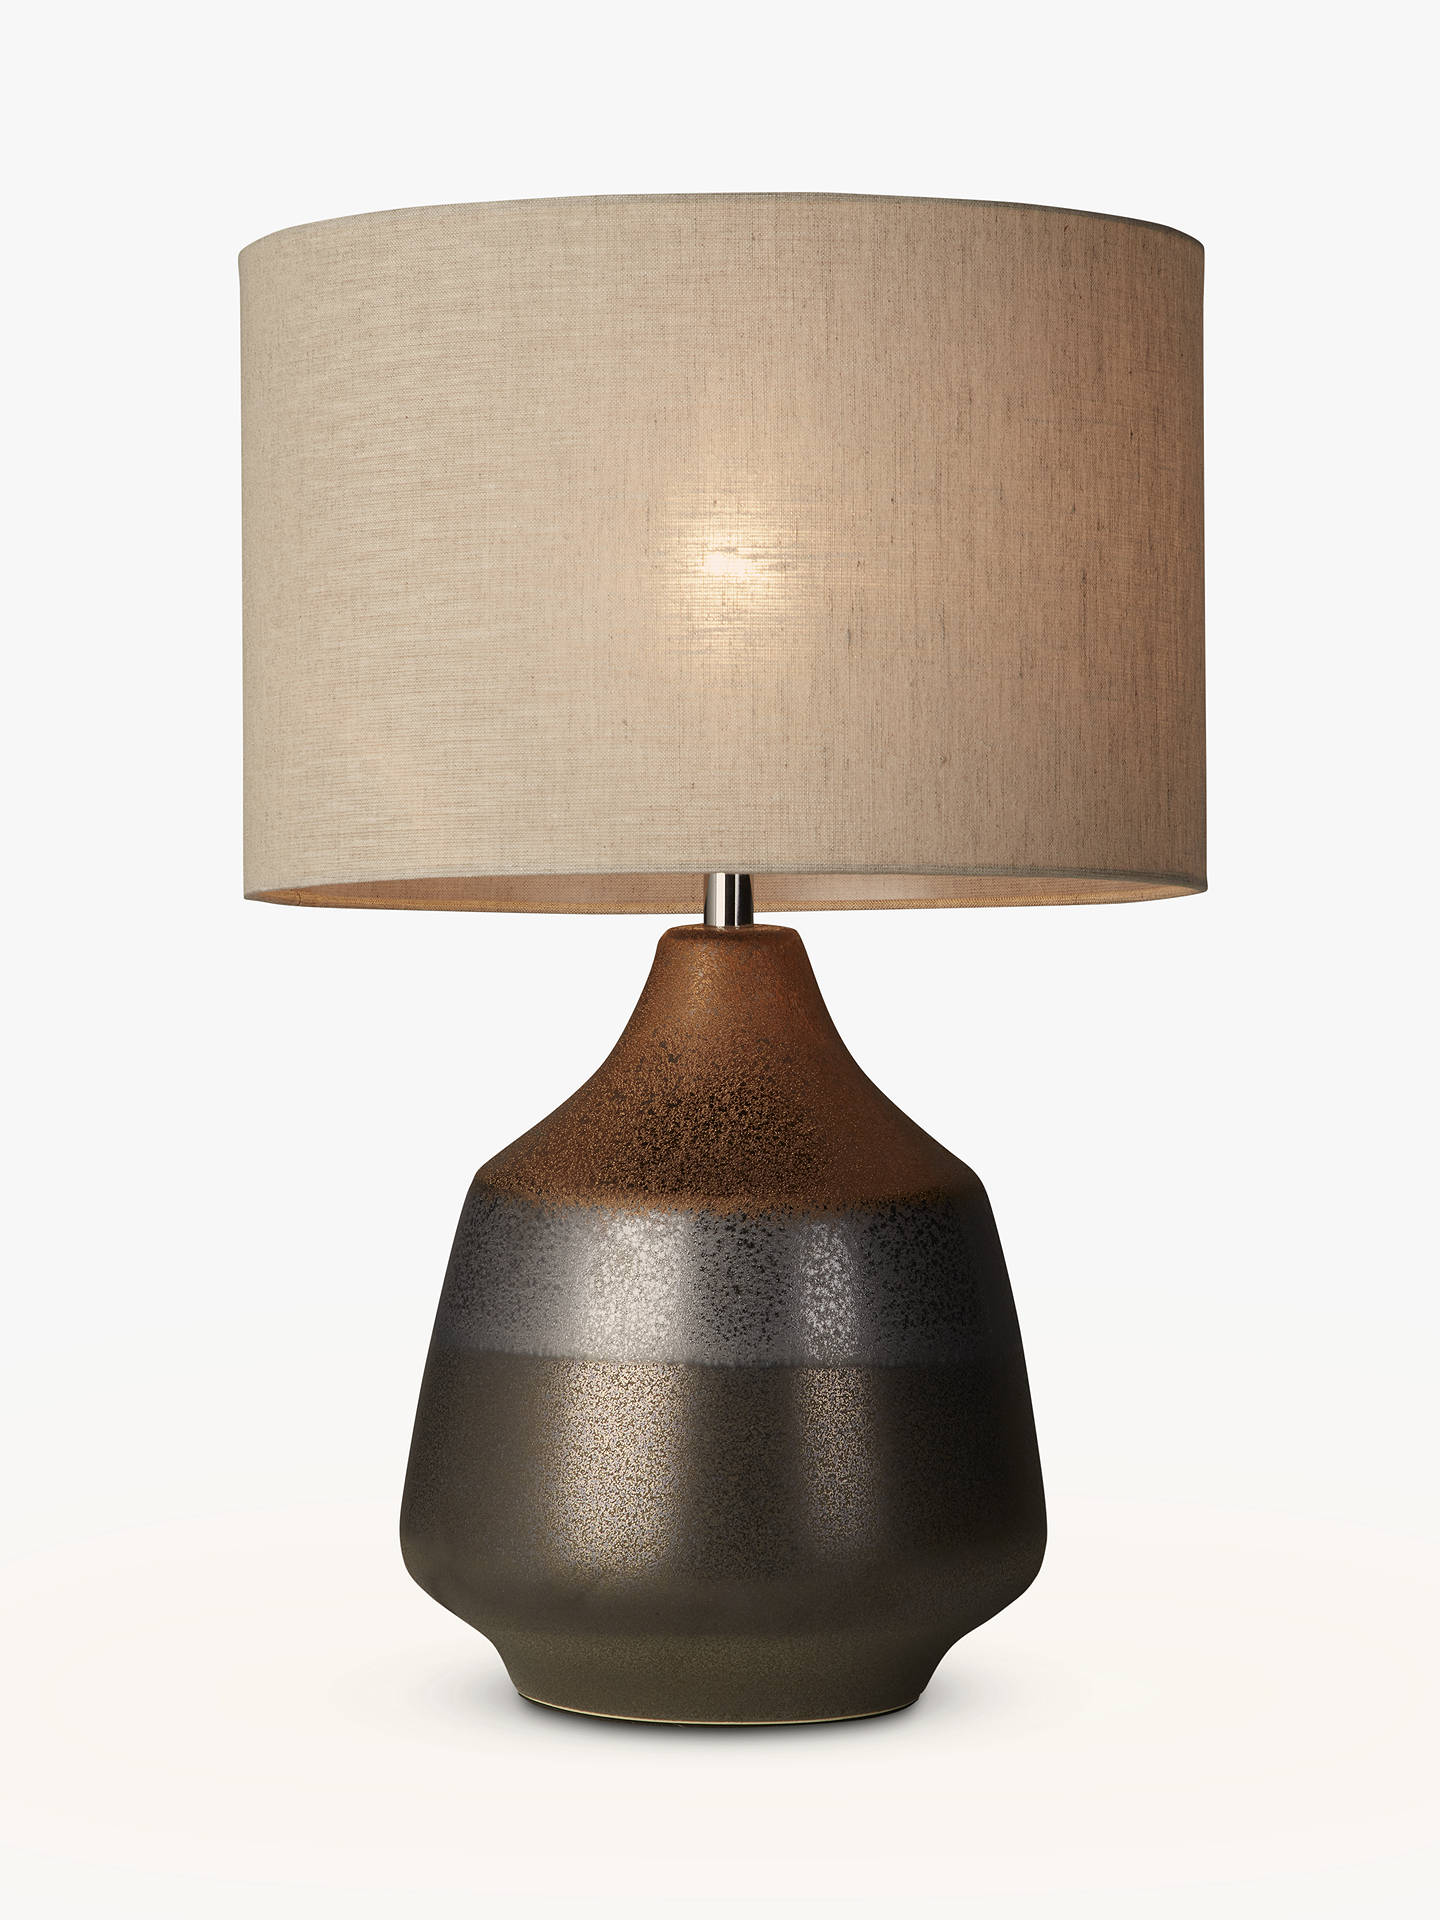 d562adee33 John Lewis   Partners Delaney Metallic Glaze Ceramic Table Lamp ...